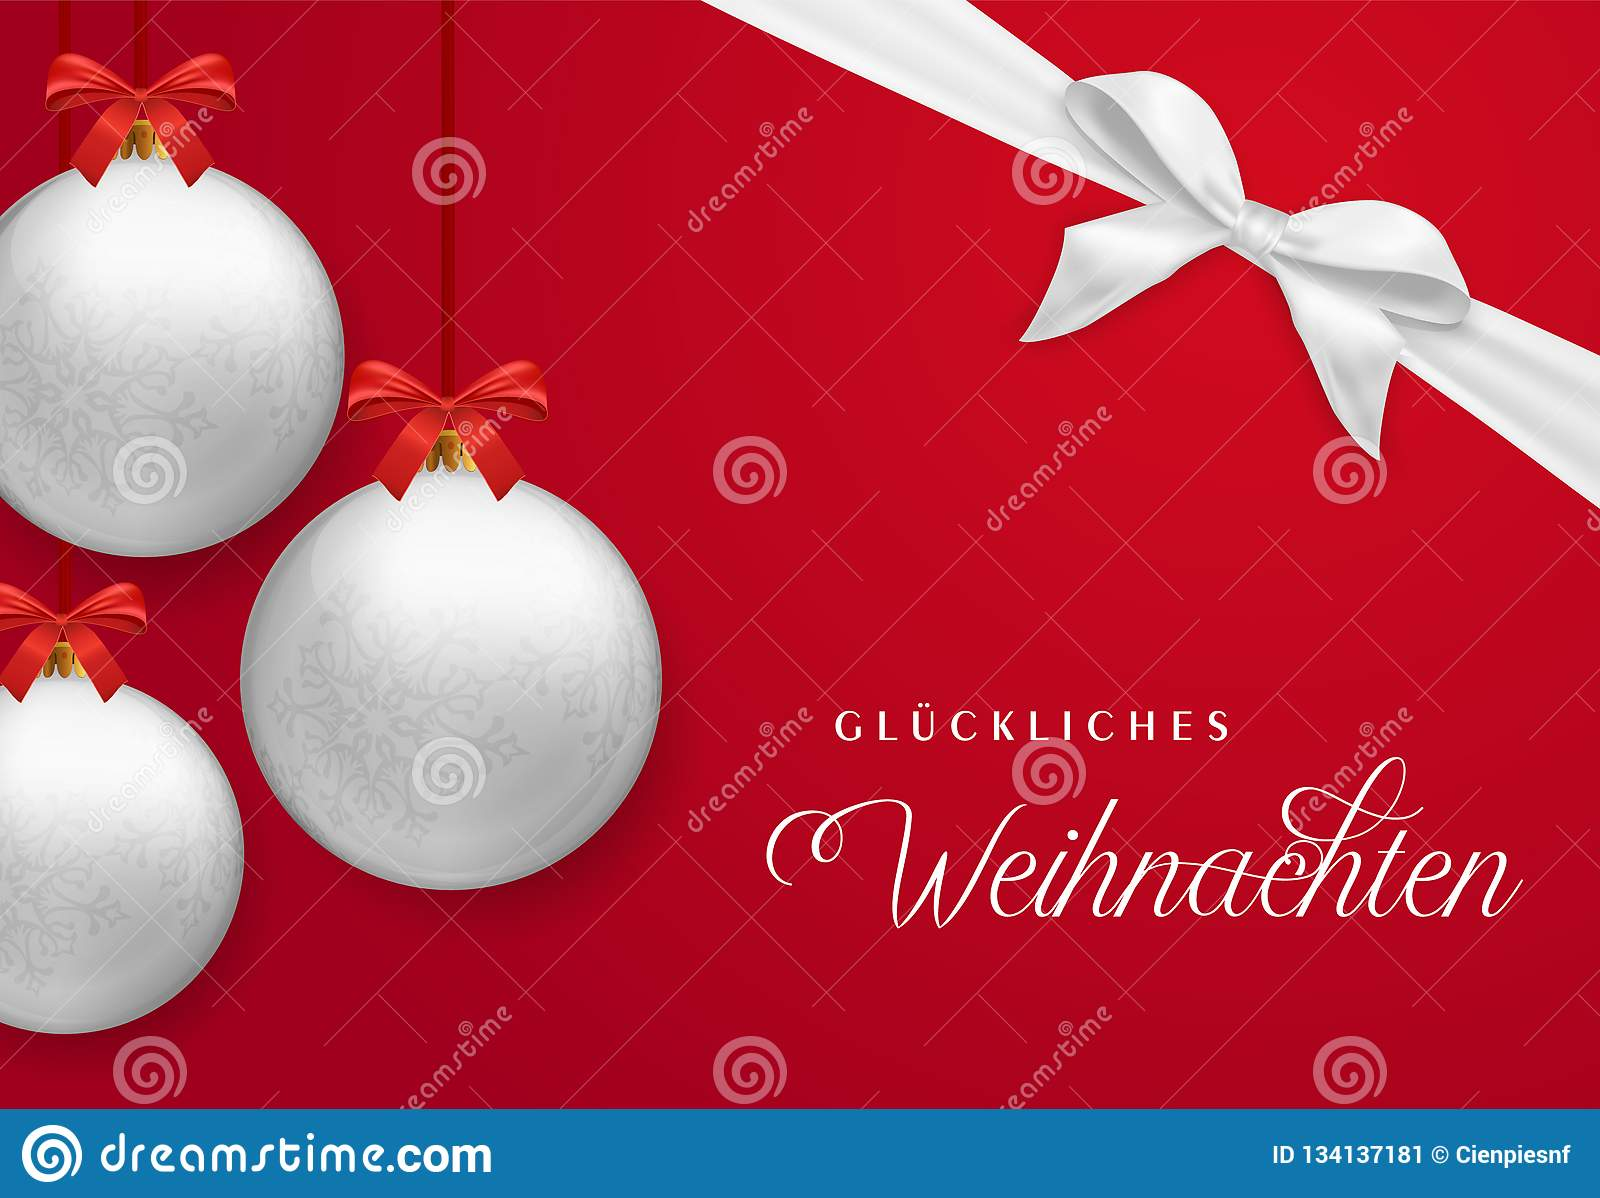 How Do You Say Merry Christmas In German.Red Christmas Card With Ornament Ball In German Stock Vector